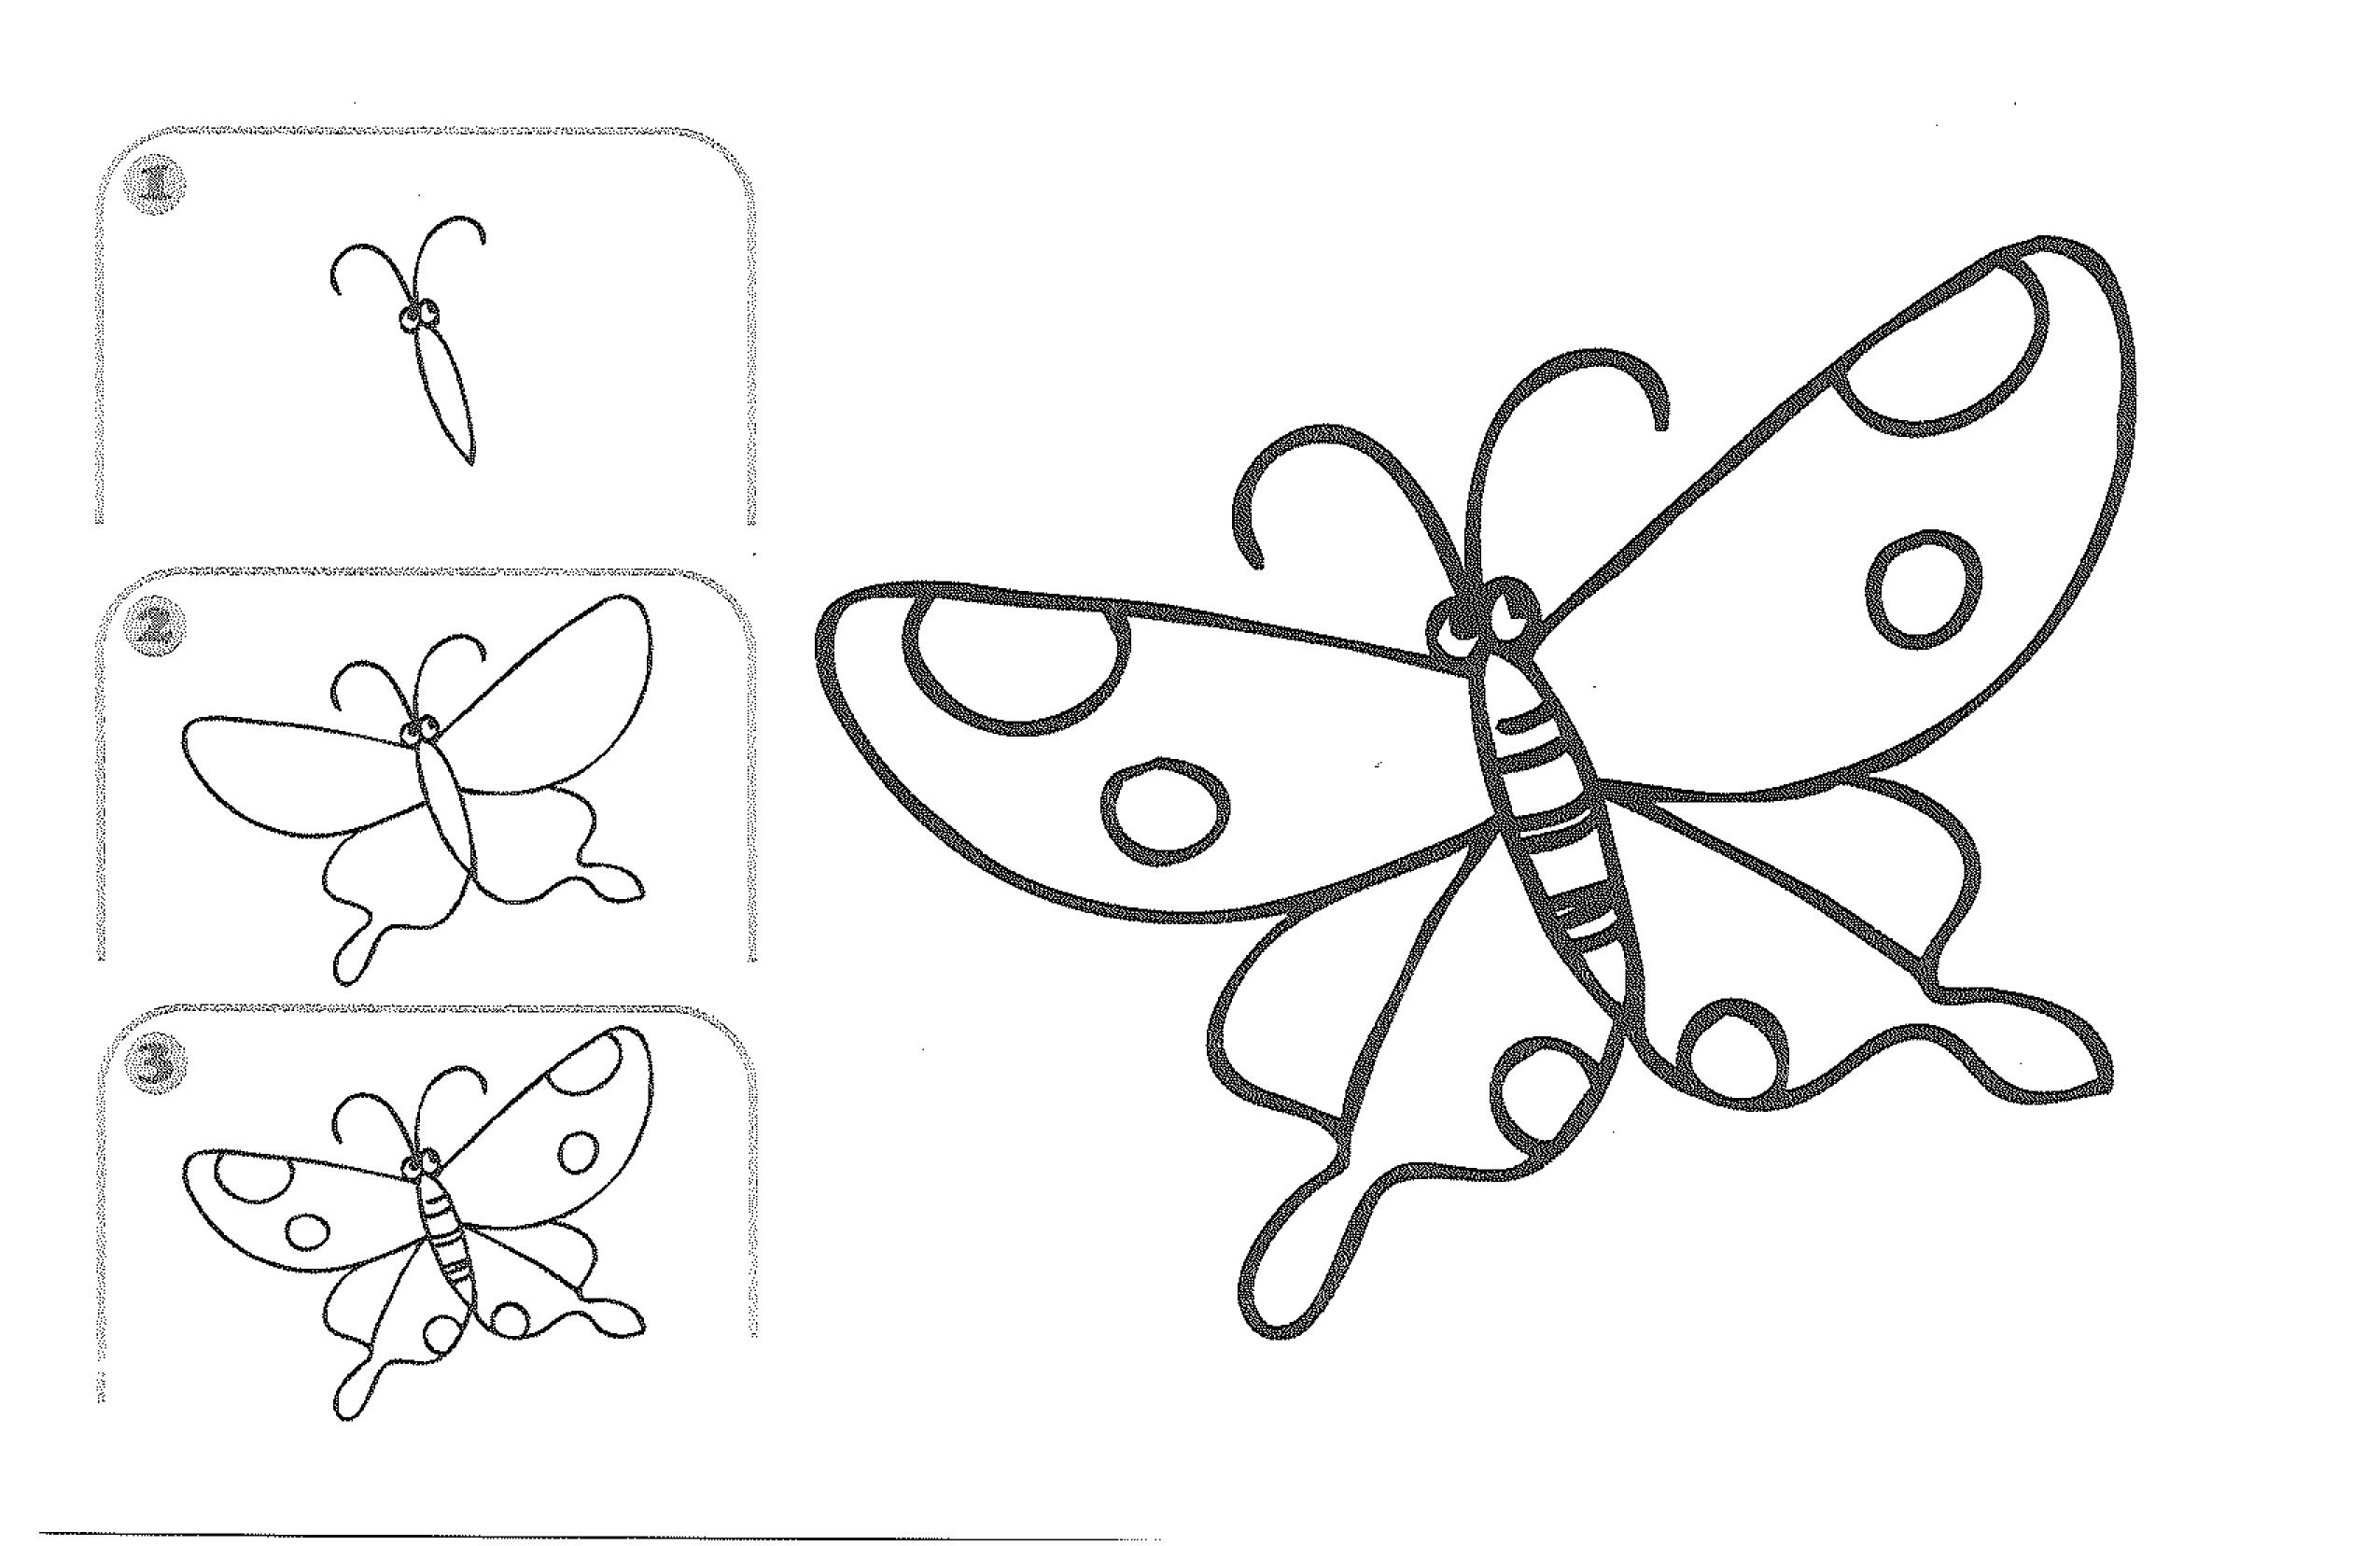 drawings by kids | Kids learn to draw insects, teaching kids drawing ...